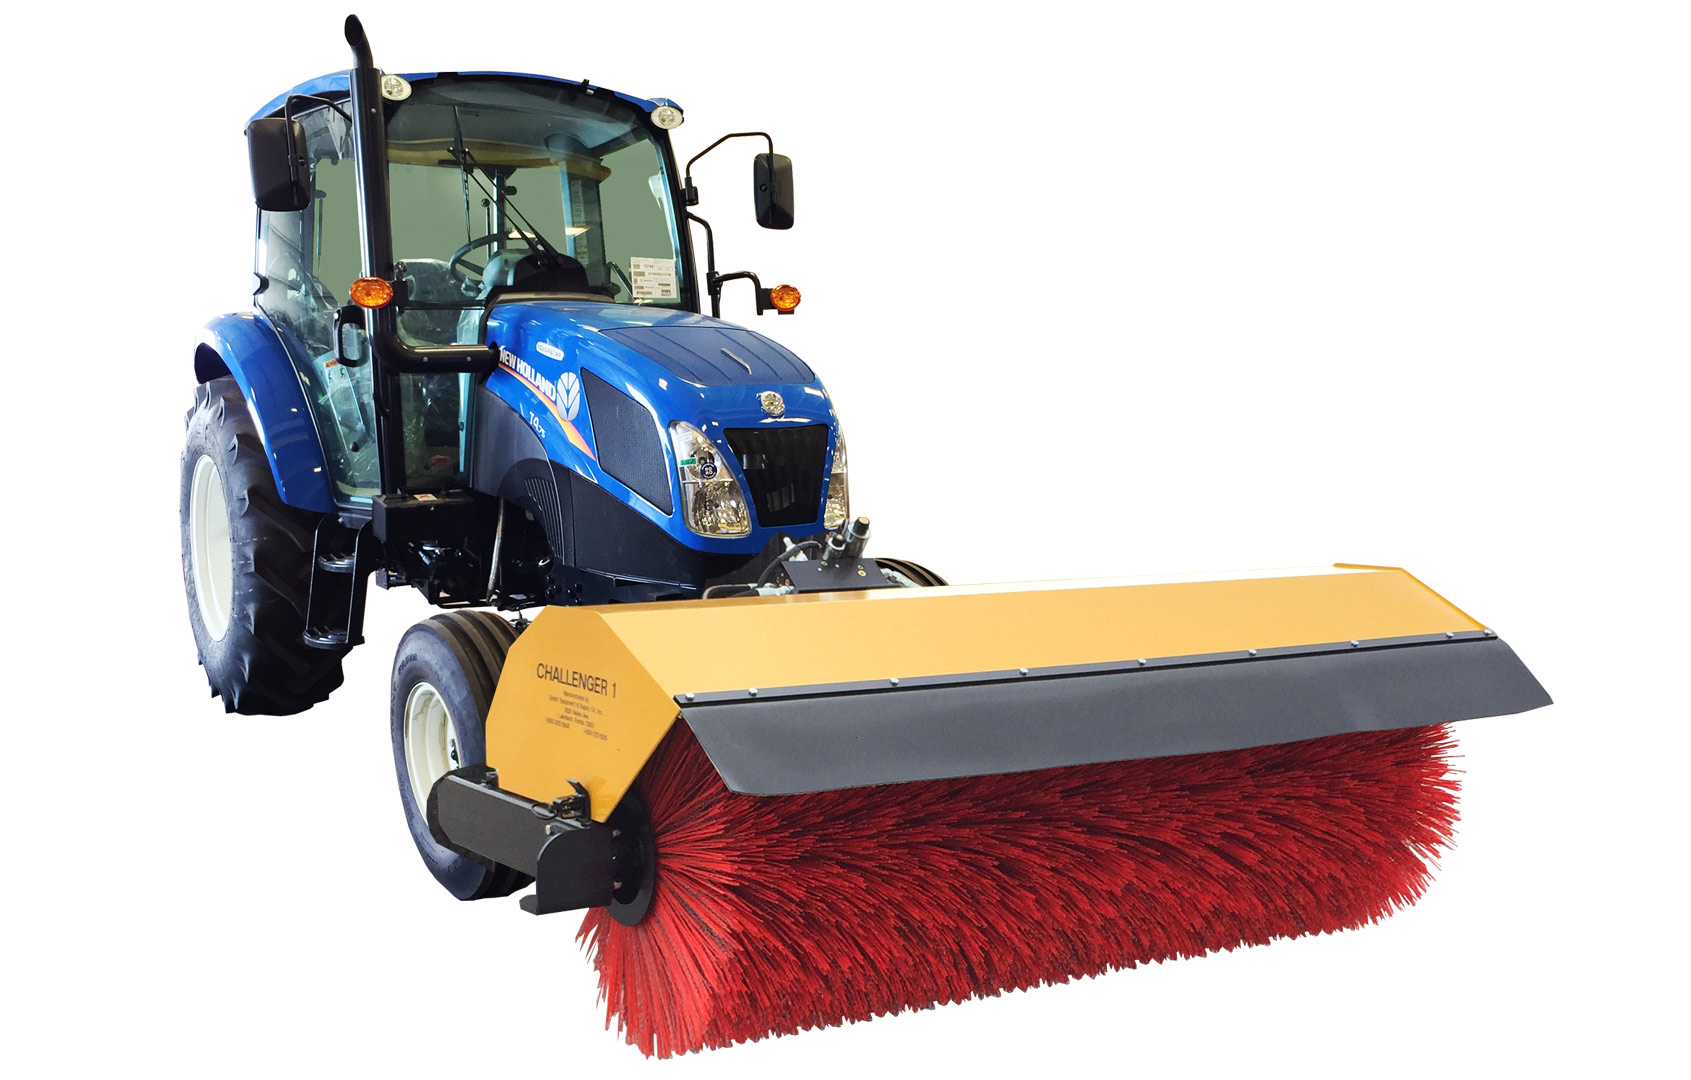 tractor attacments and skid steer solutions smith equipment. Black Bedroom Furniture Sets. Home Design Ideas